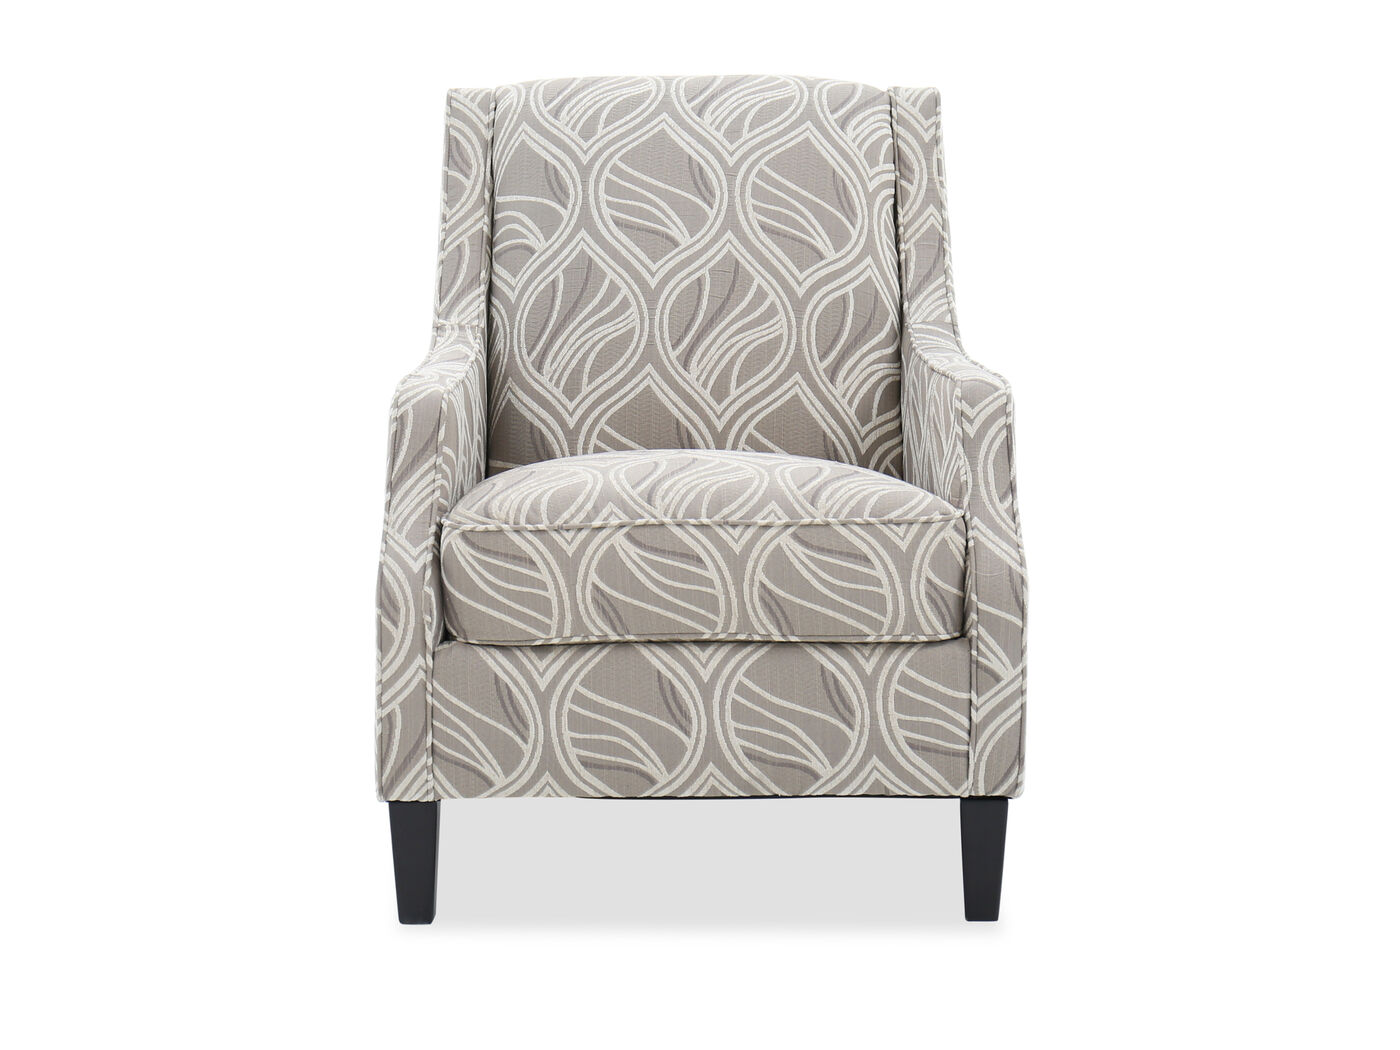 Leaf Patterned Contemporary 30 Quot Accent Chair In Beige